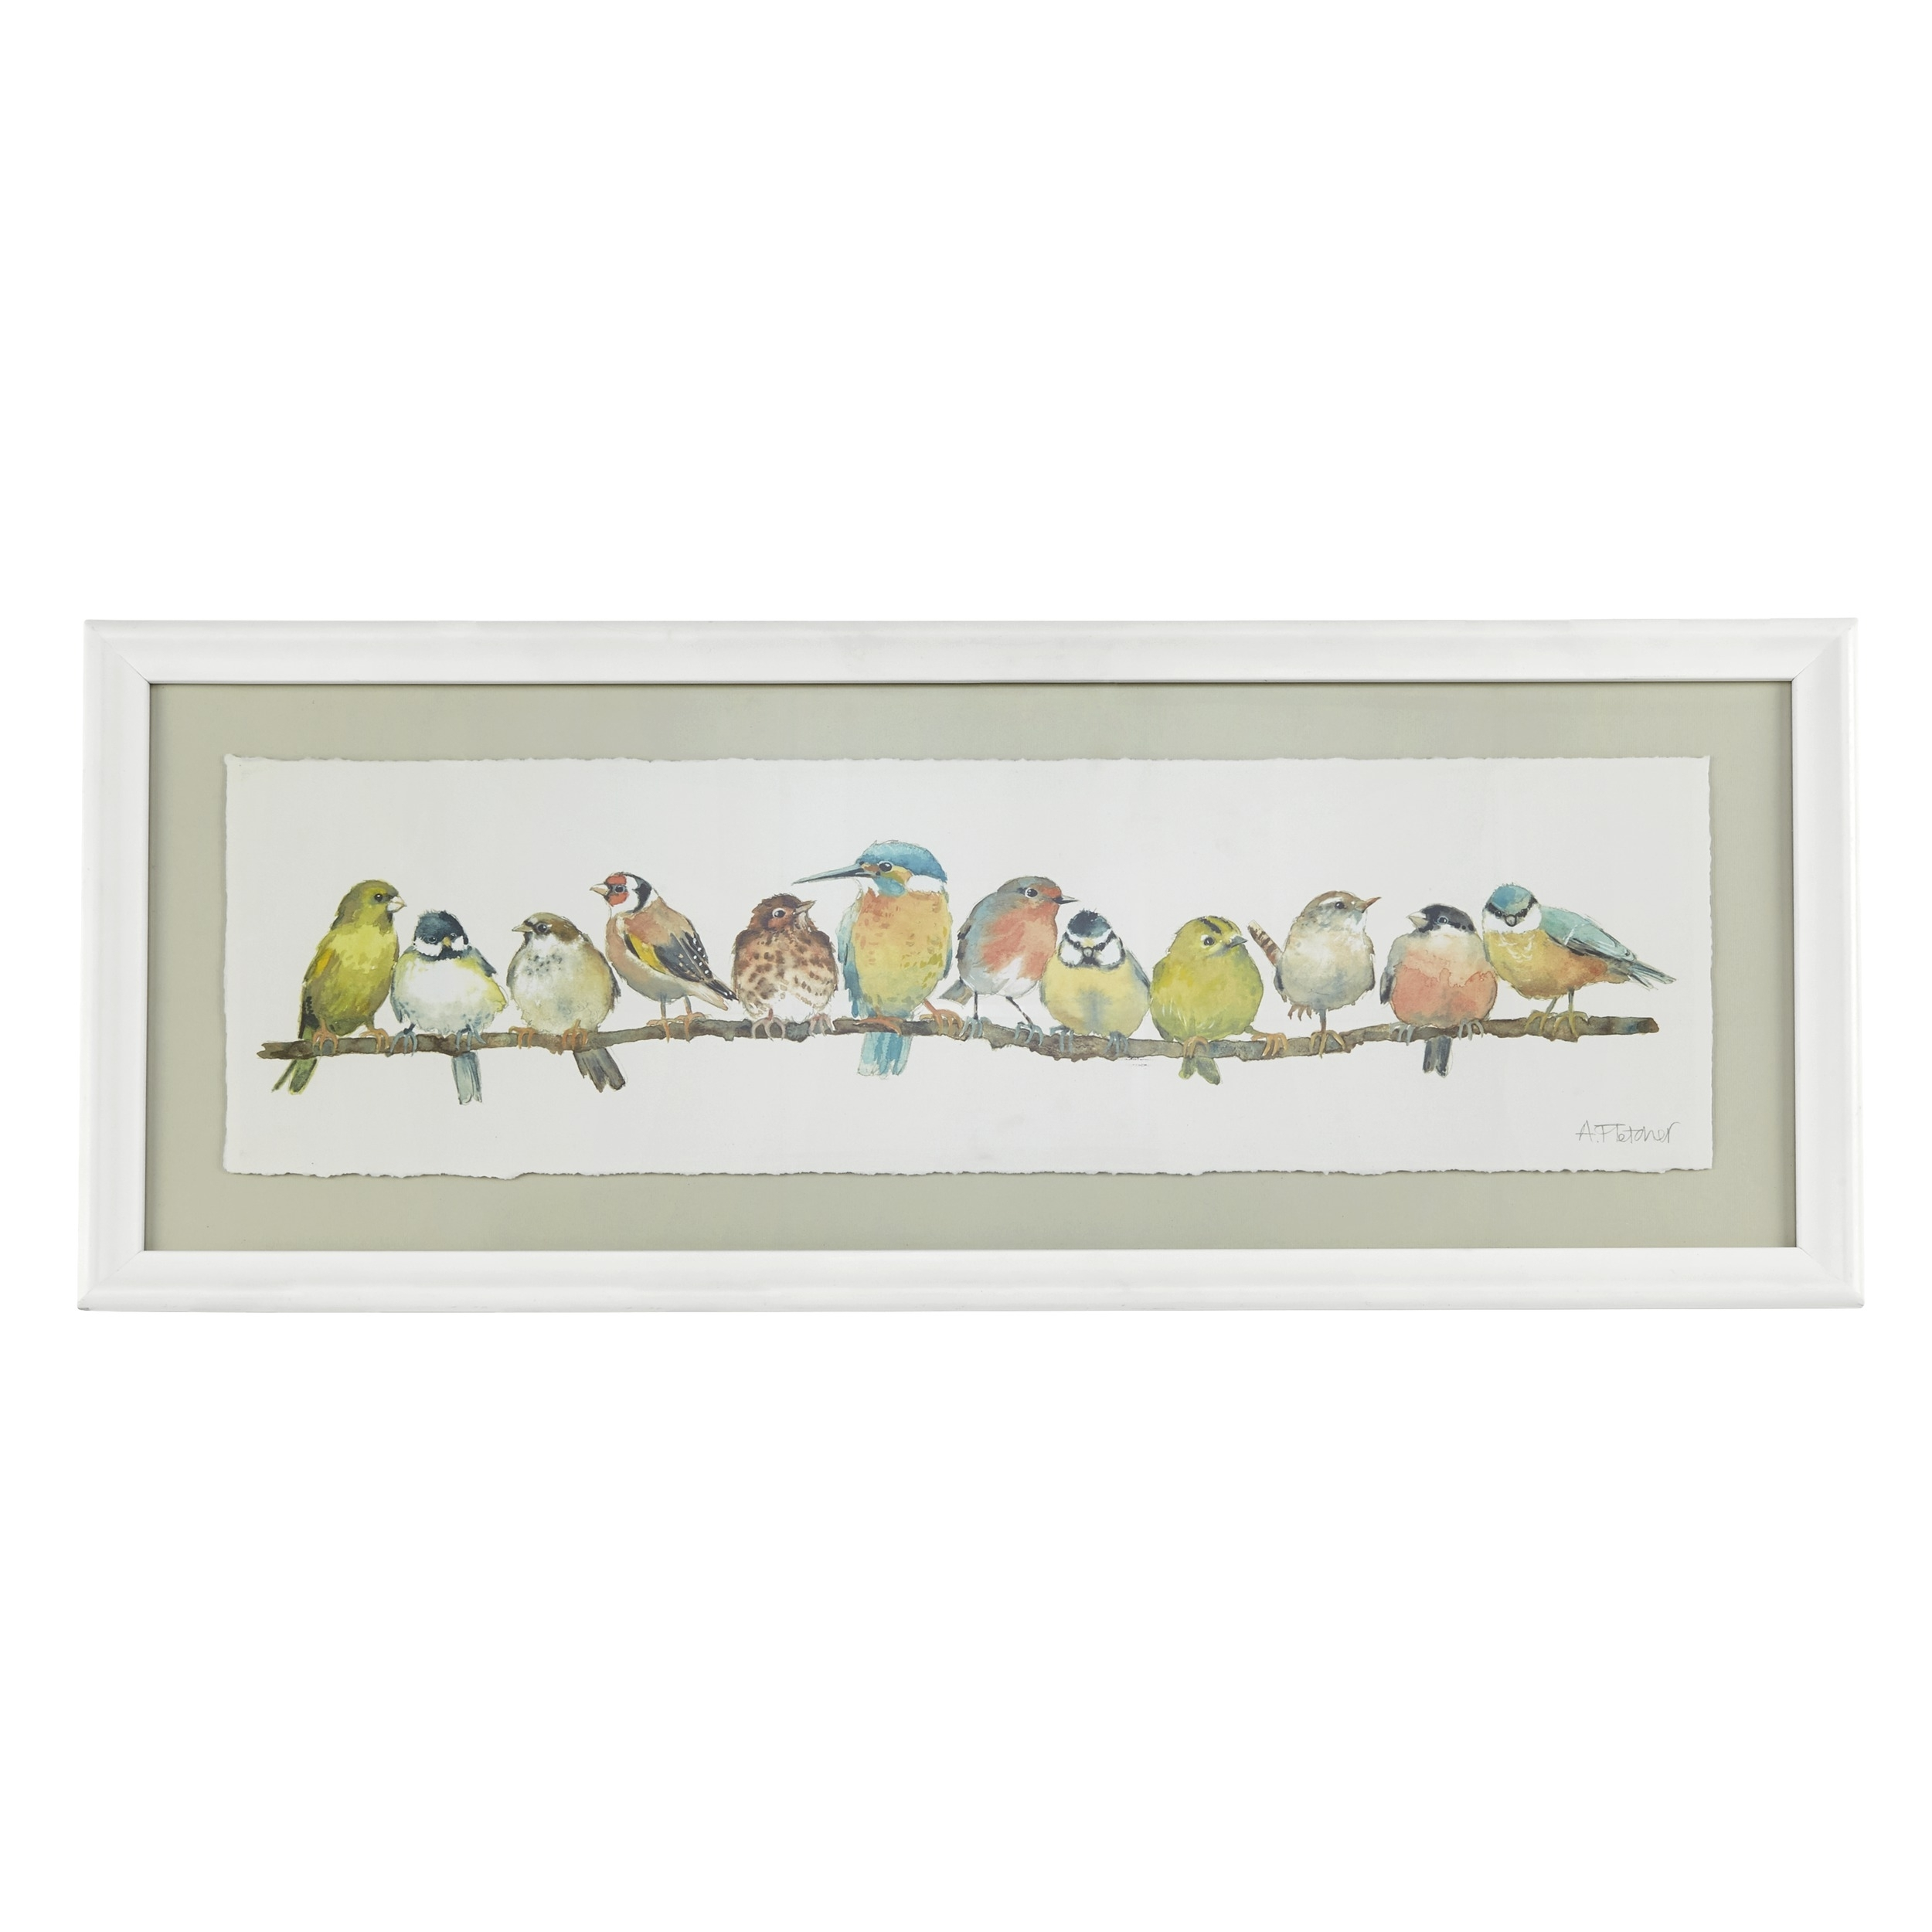 Garden Birds Framed Print At Laura Ashley | Diy Crafts | Pinterest Within Most Current Birds Framed Art Prints (Gallery 1 of 15)